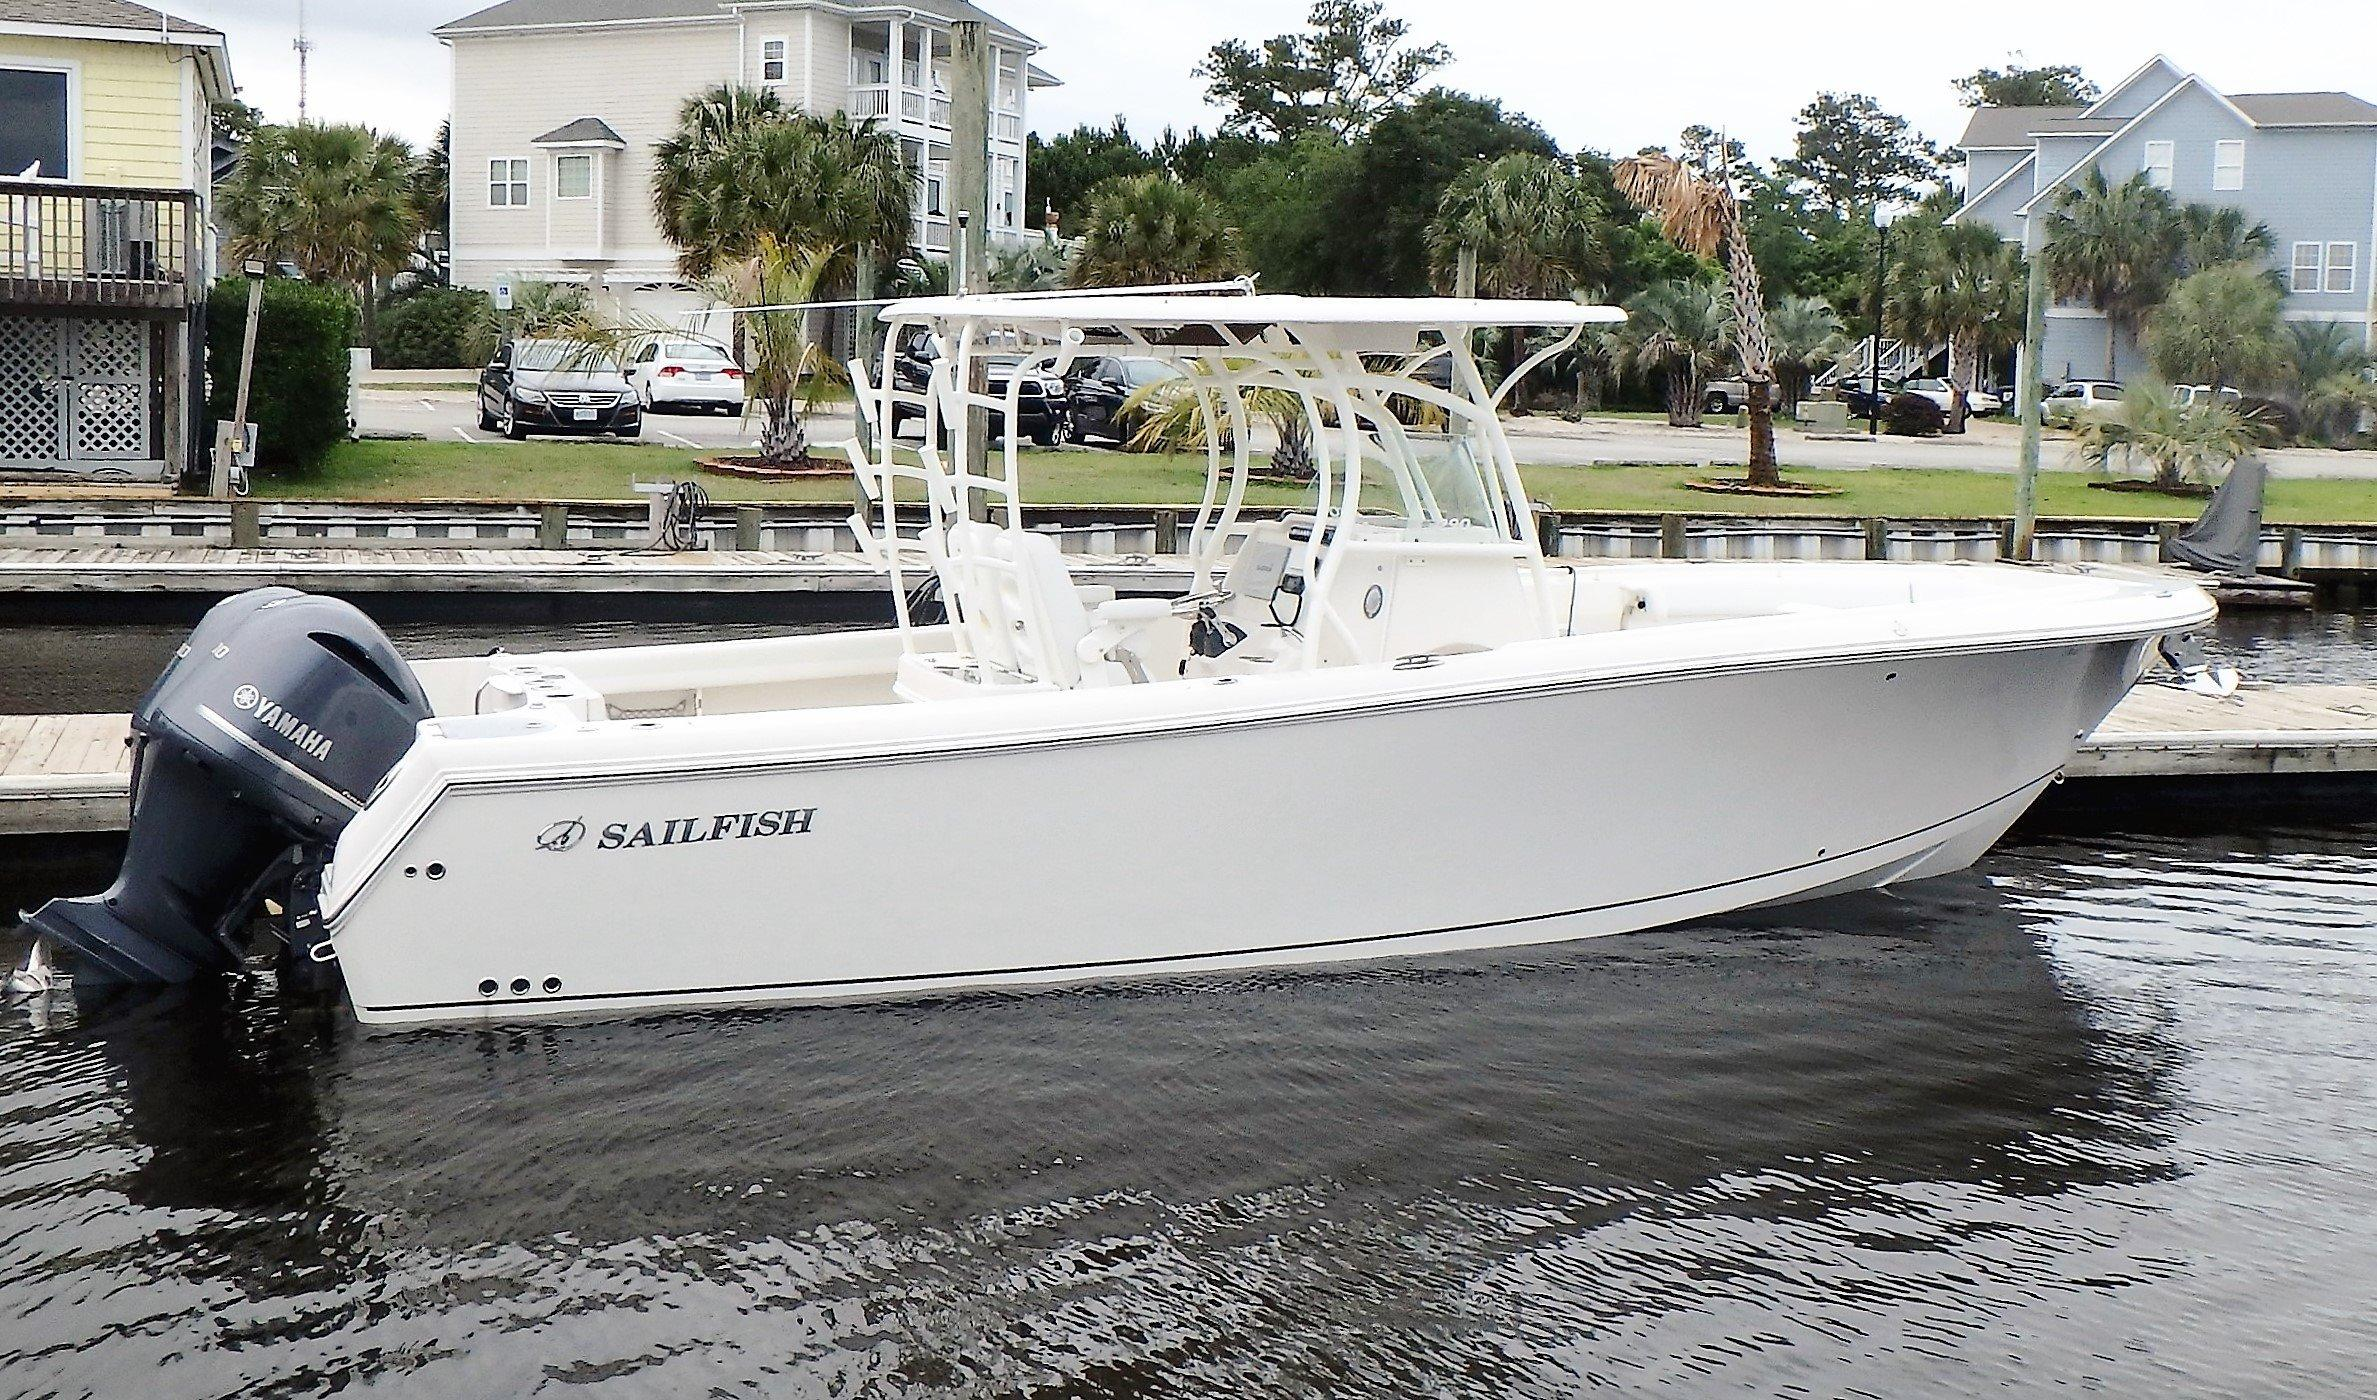 Sailfish | New and Used Boats for Sale in North Carolina